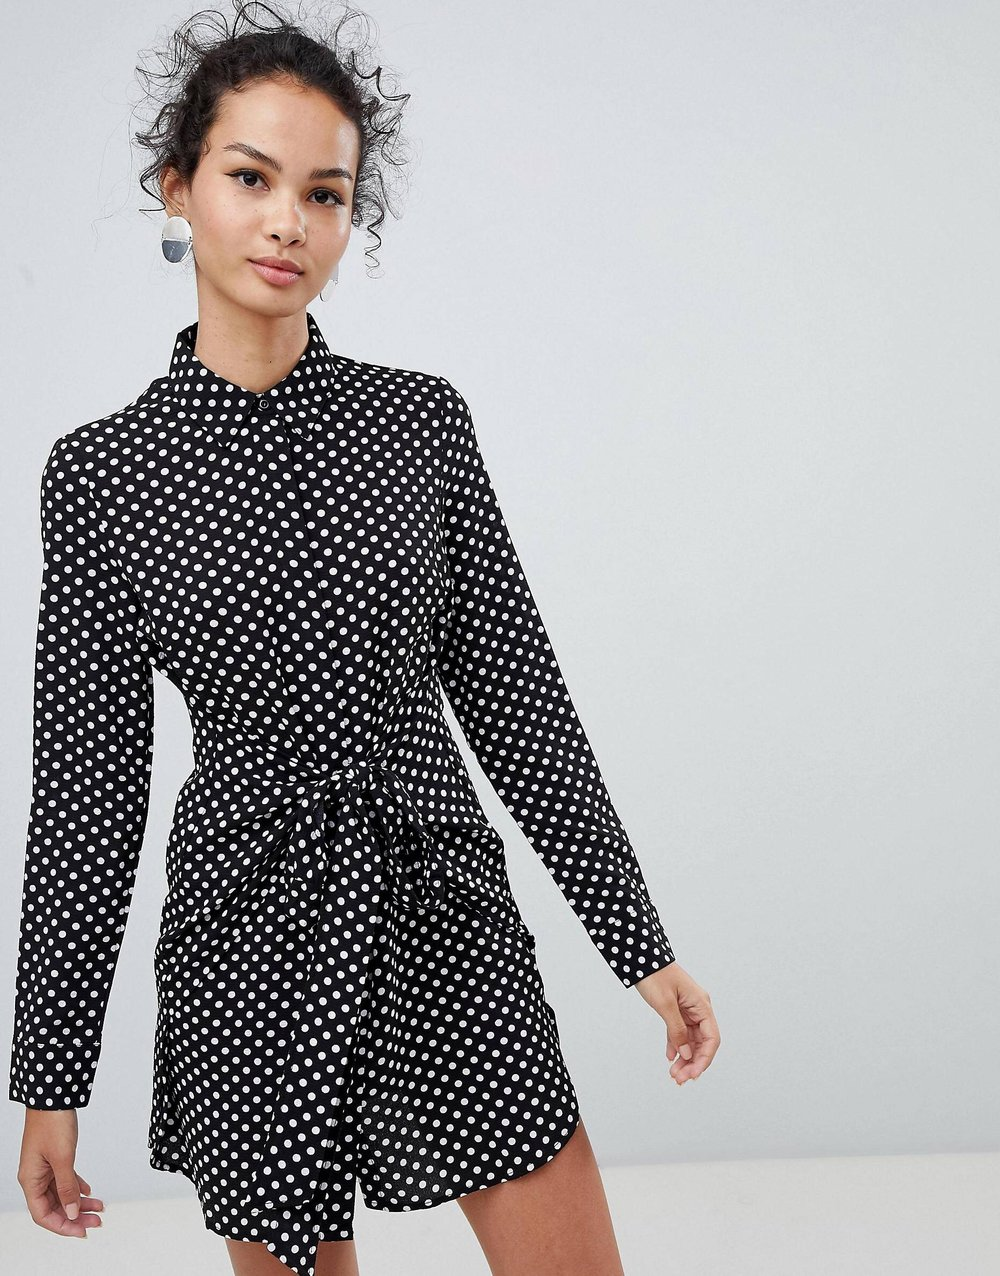 Shirt dress, QED London, $32.  Find it  here .